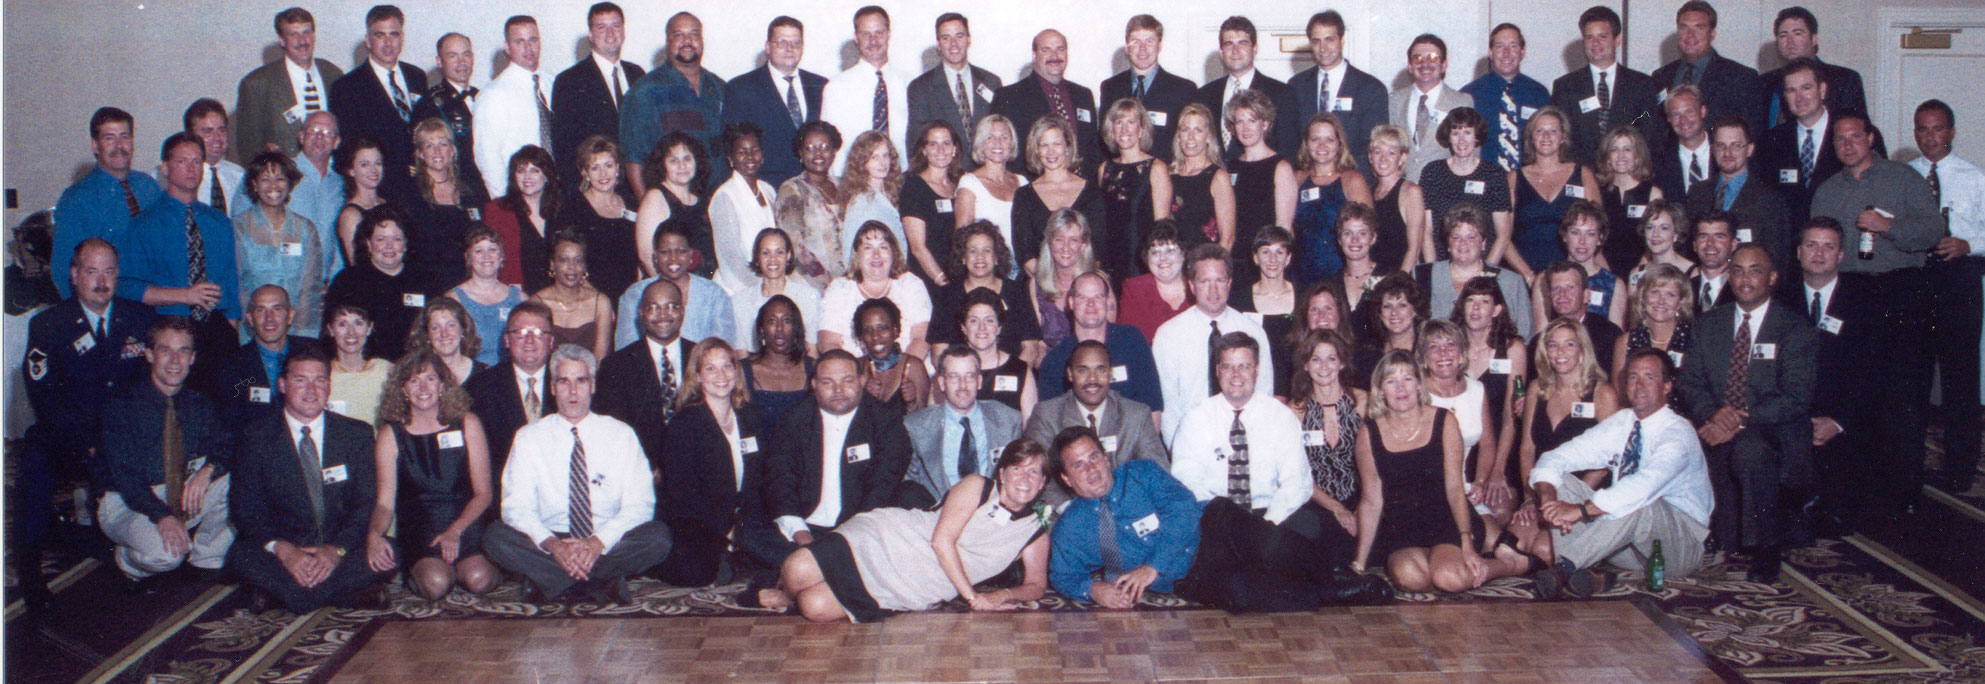 20th Class Reunion Group Photo July 14th 2001